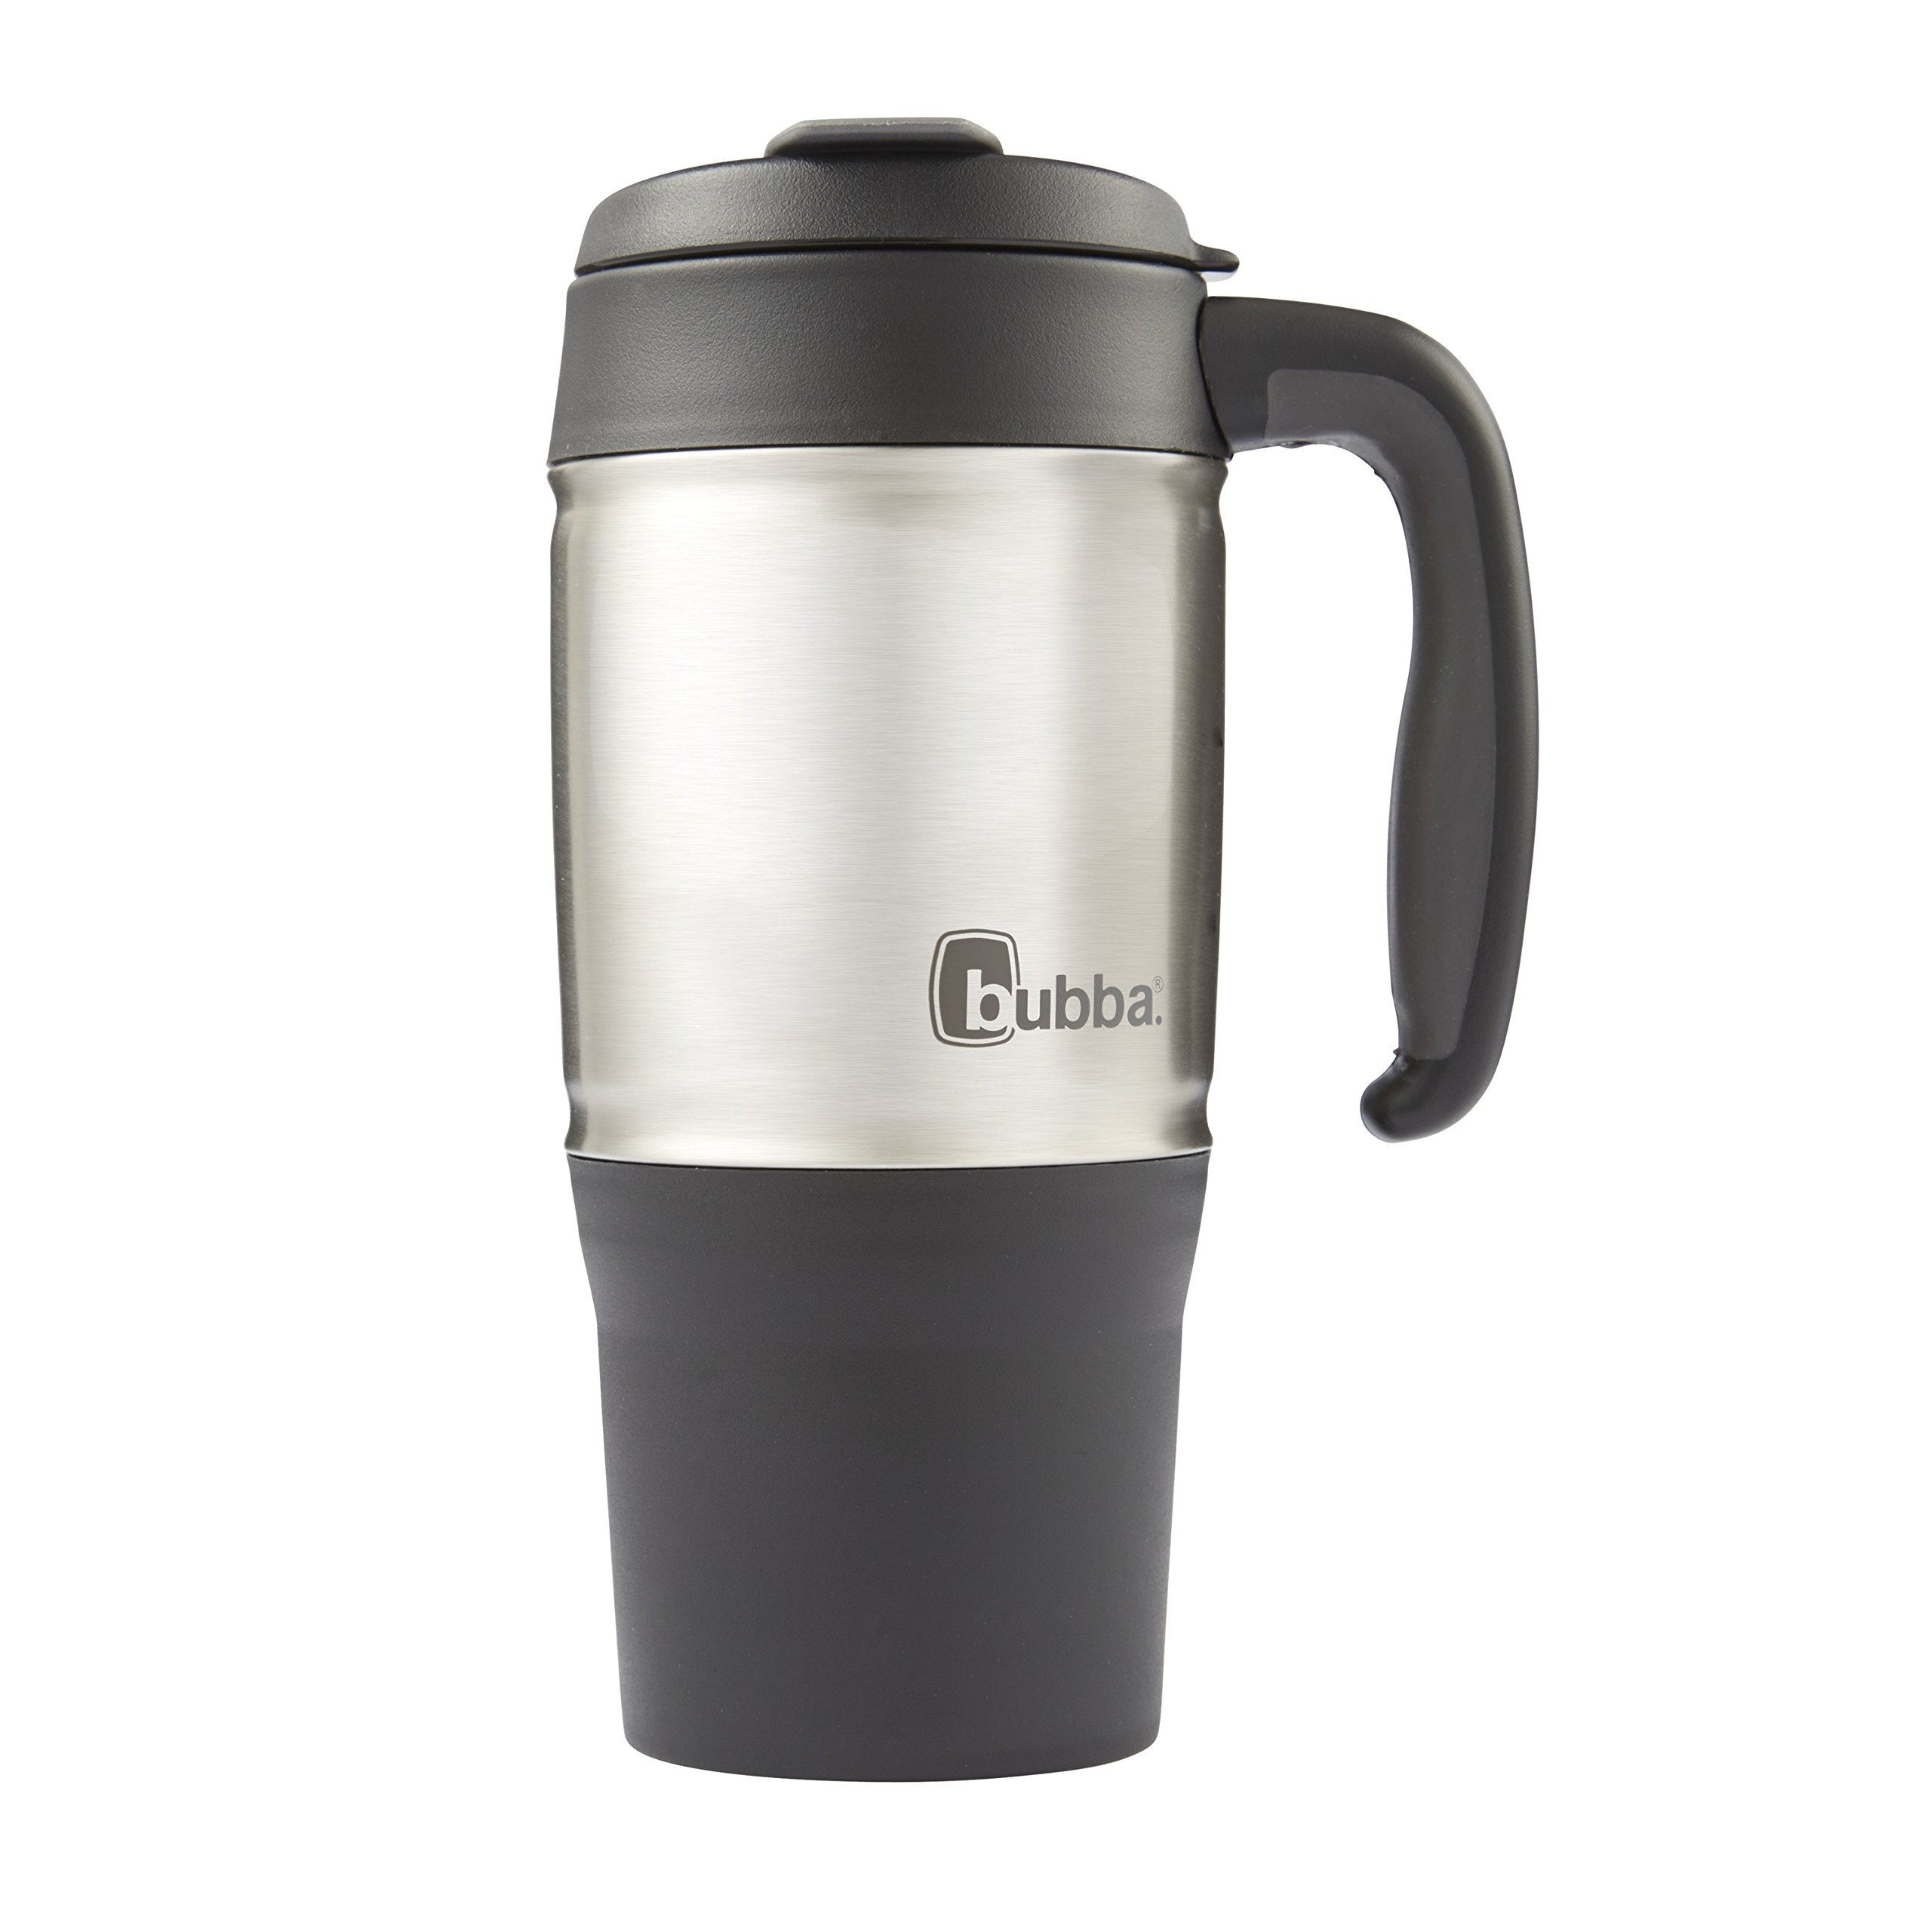 18 oz hot cold insulated travel coffee mug thermos tea cup double wall tumble ebay. Black Bedroom Furniture Sets. Home Design Ideas